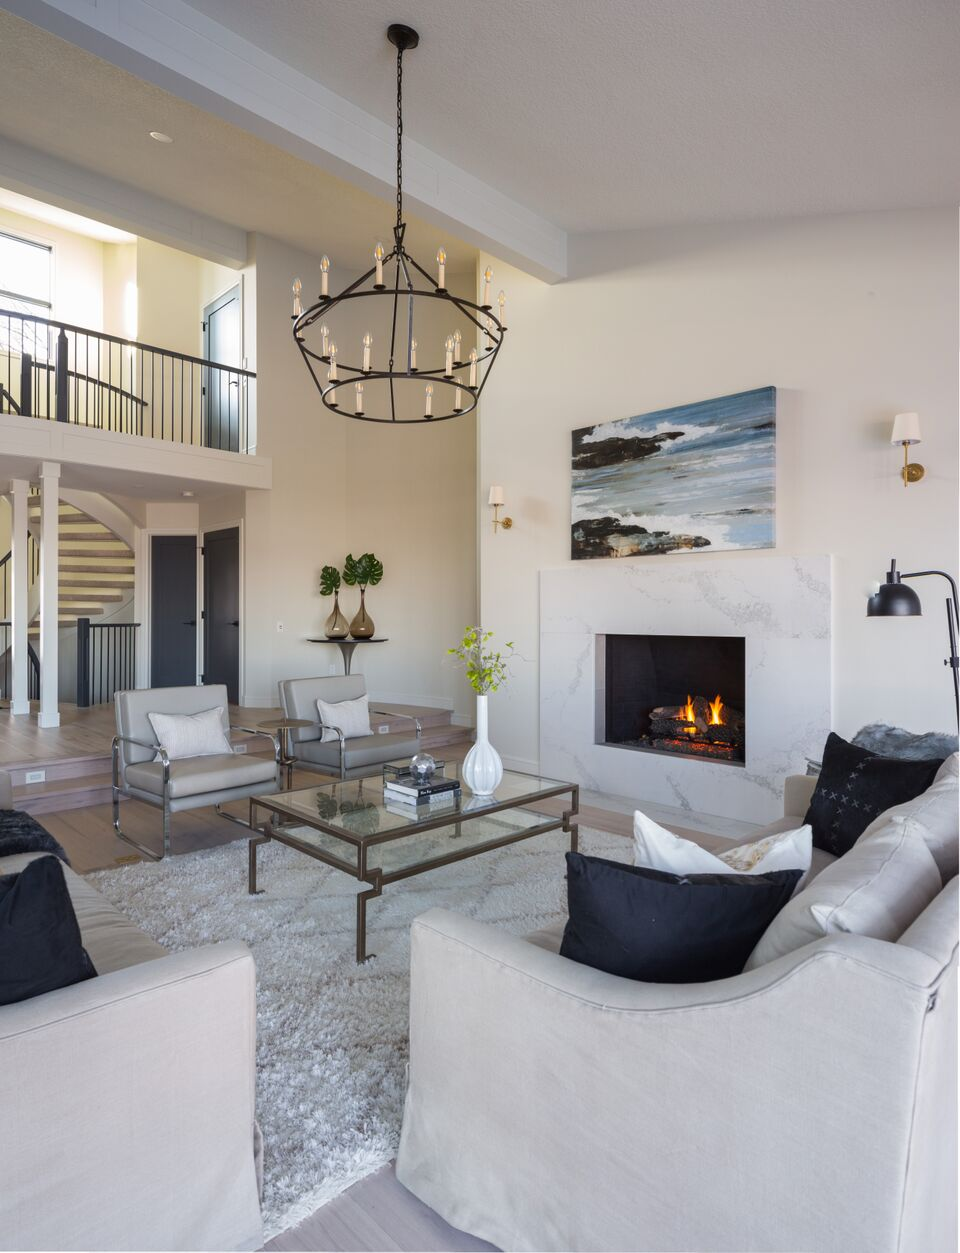 NW Calgary modern traditional living room, fireplace, mixed seating, oversized chandelier